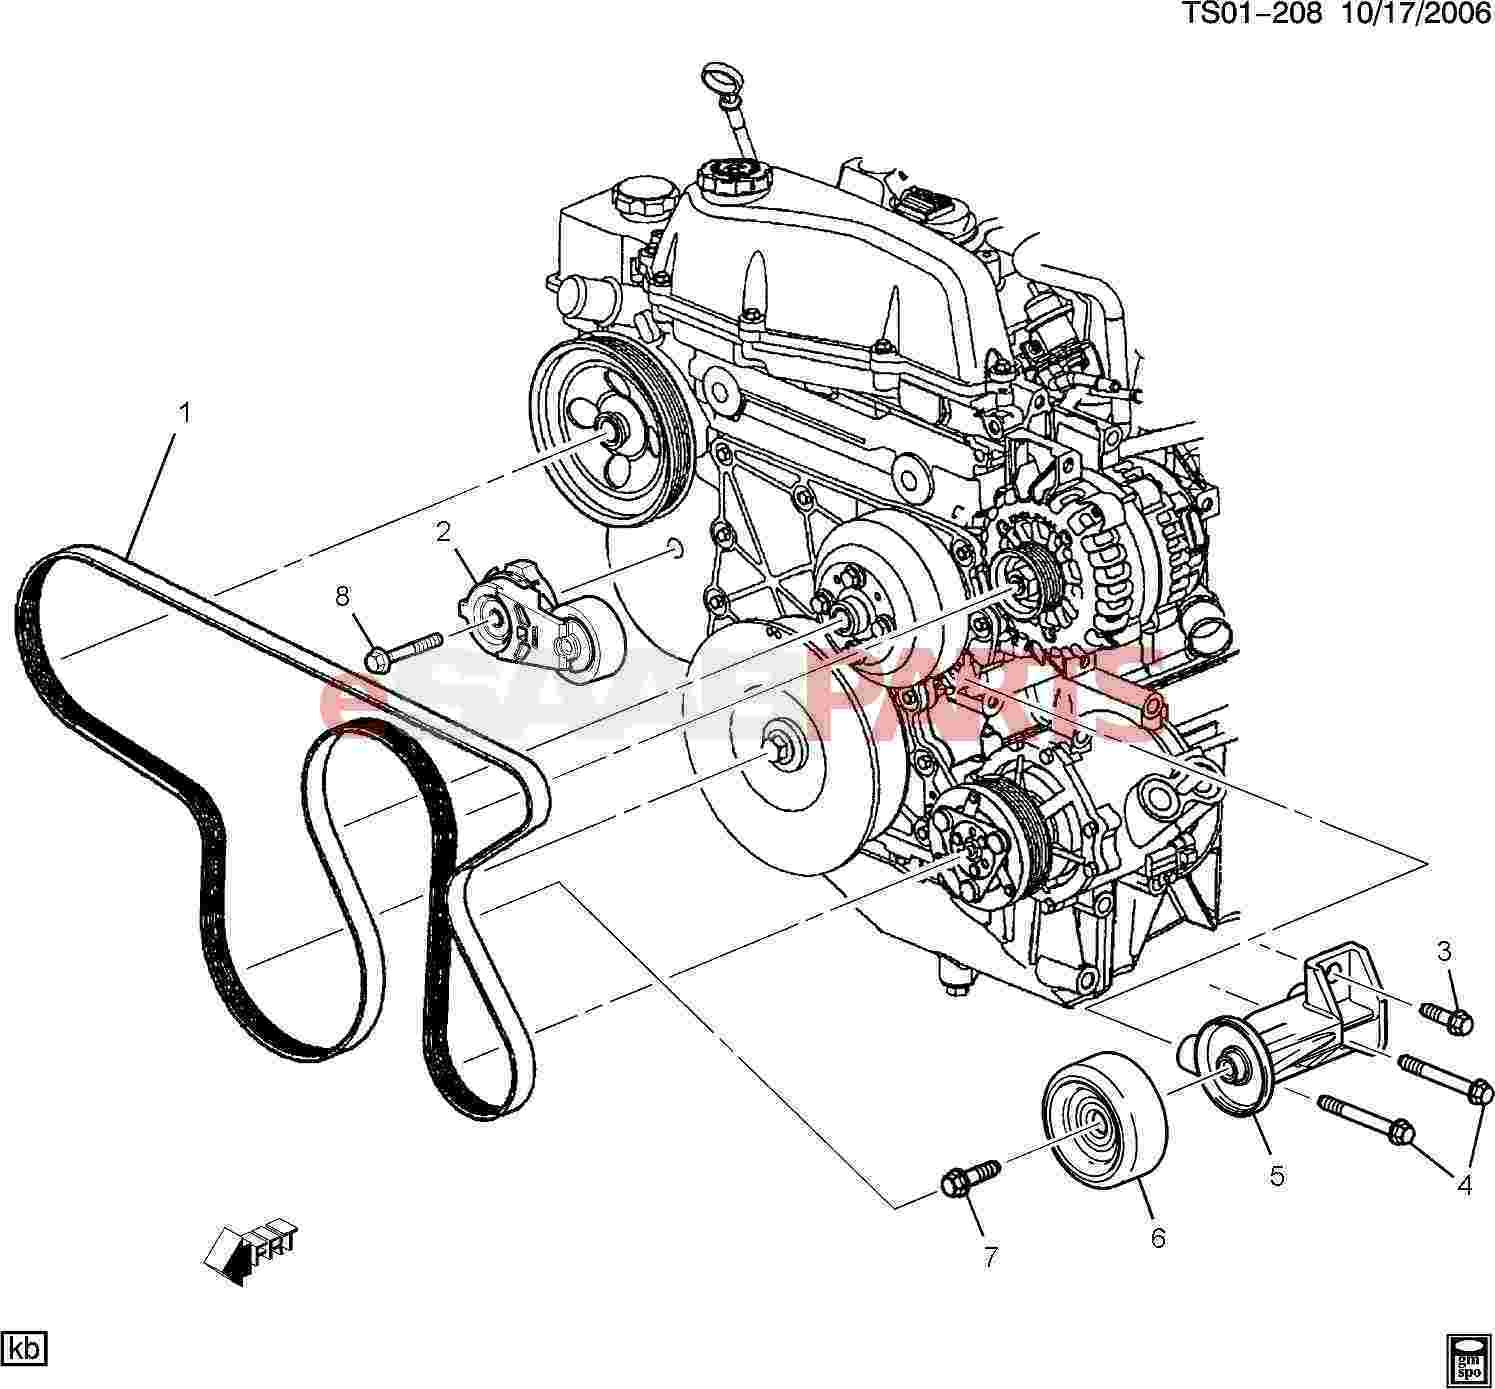 Engine Diagram 6 0 2500 Chevy Wiring Diagrams Hup Manage A Hup Manage A Alcuoredeldiabete It